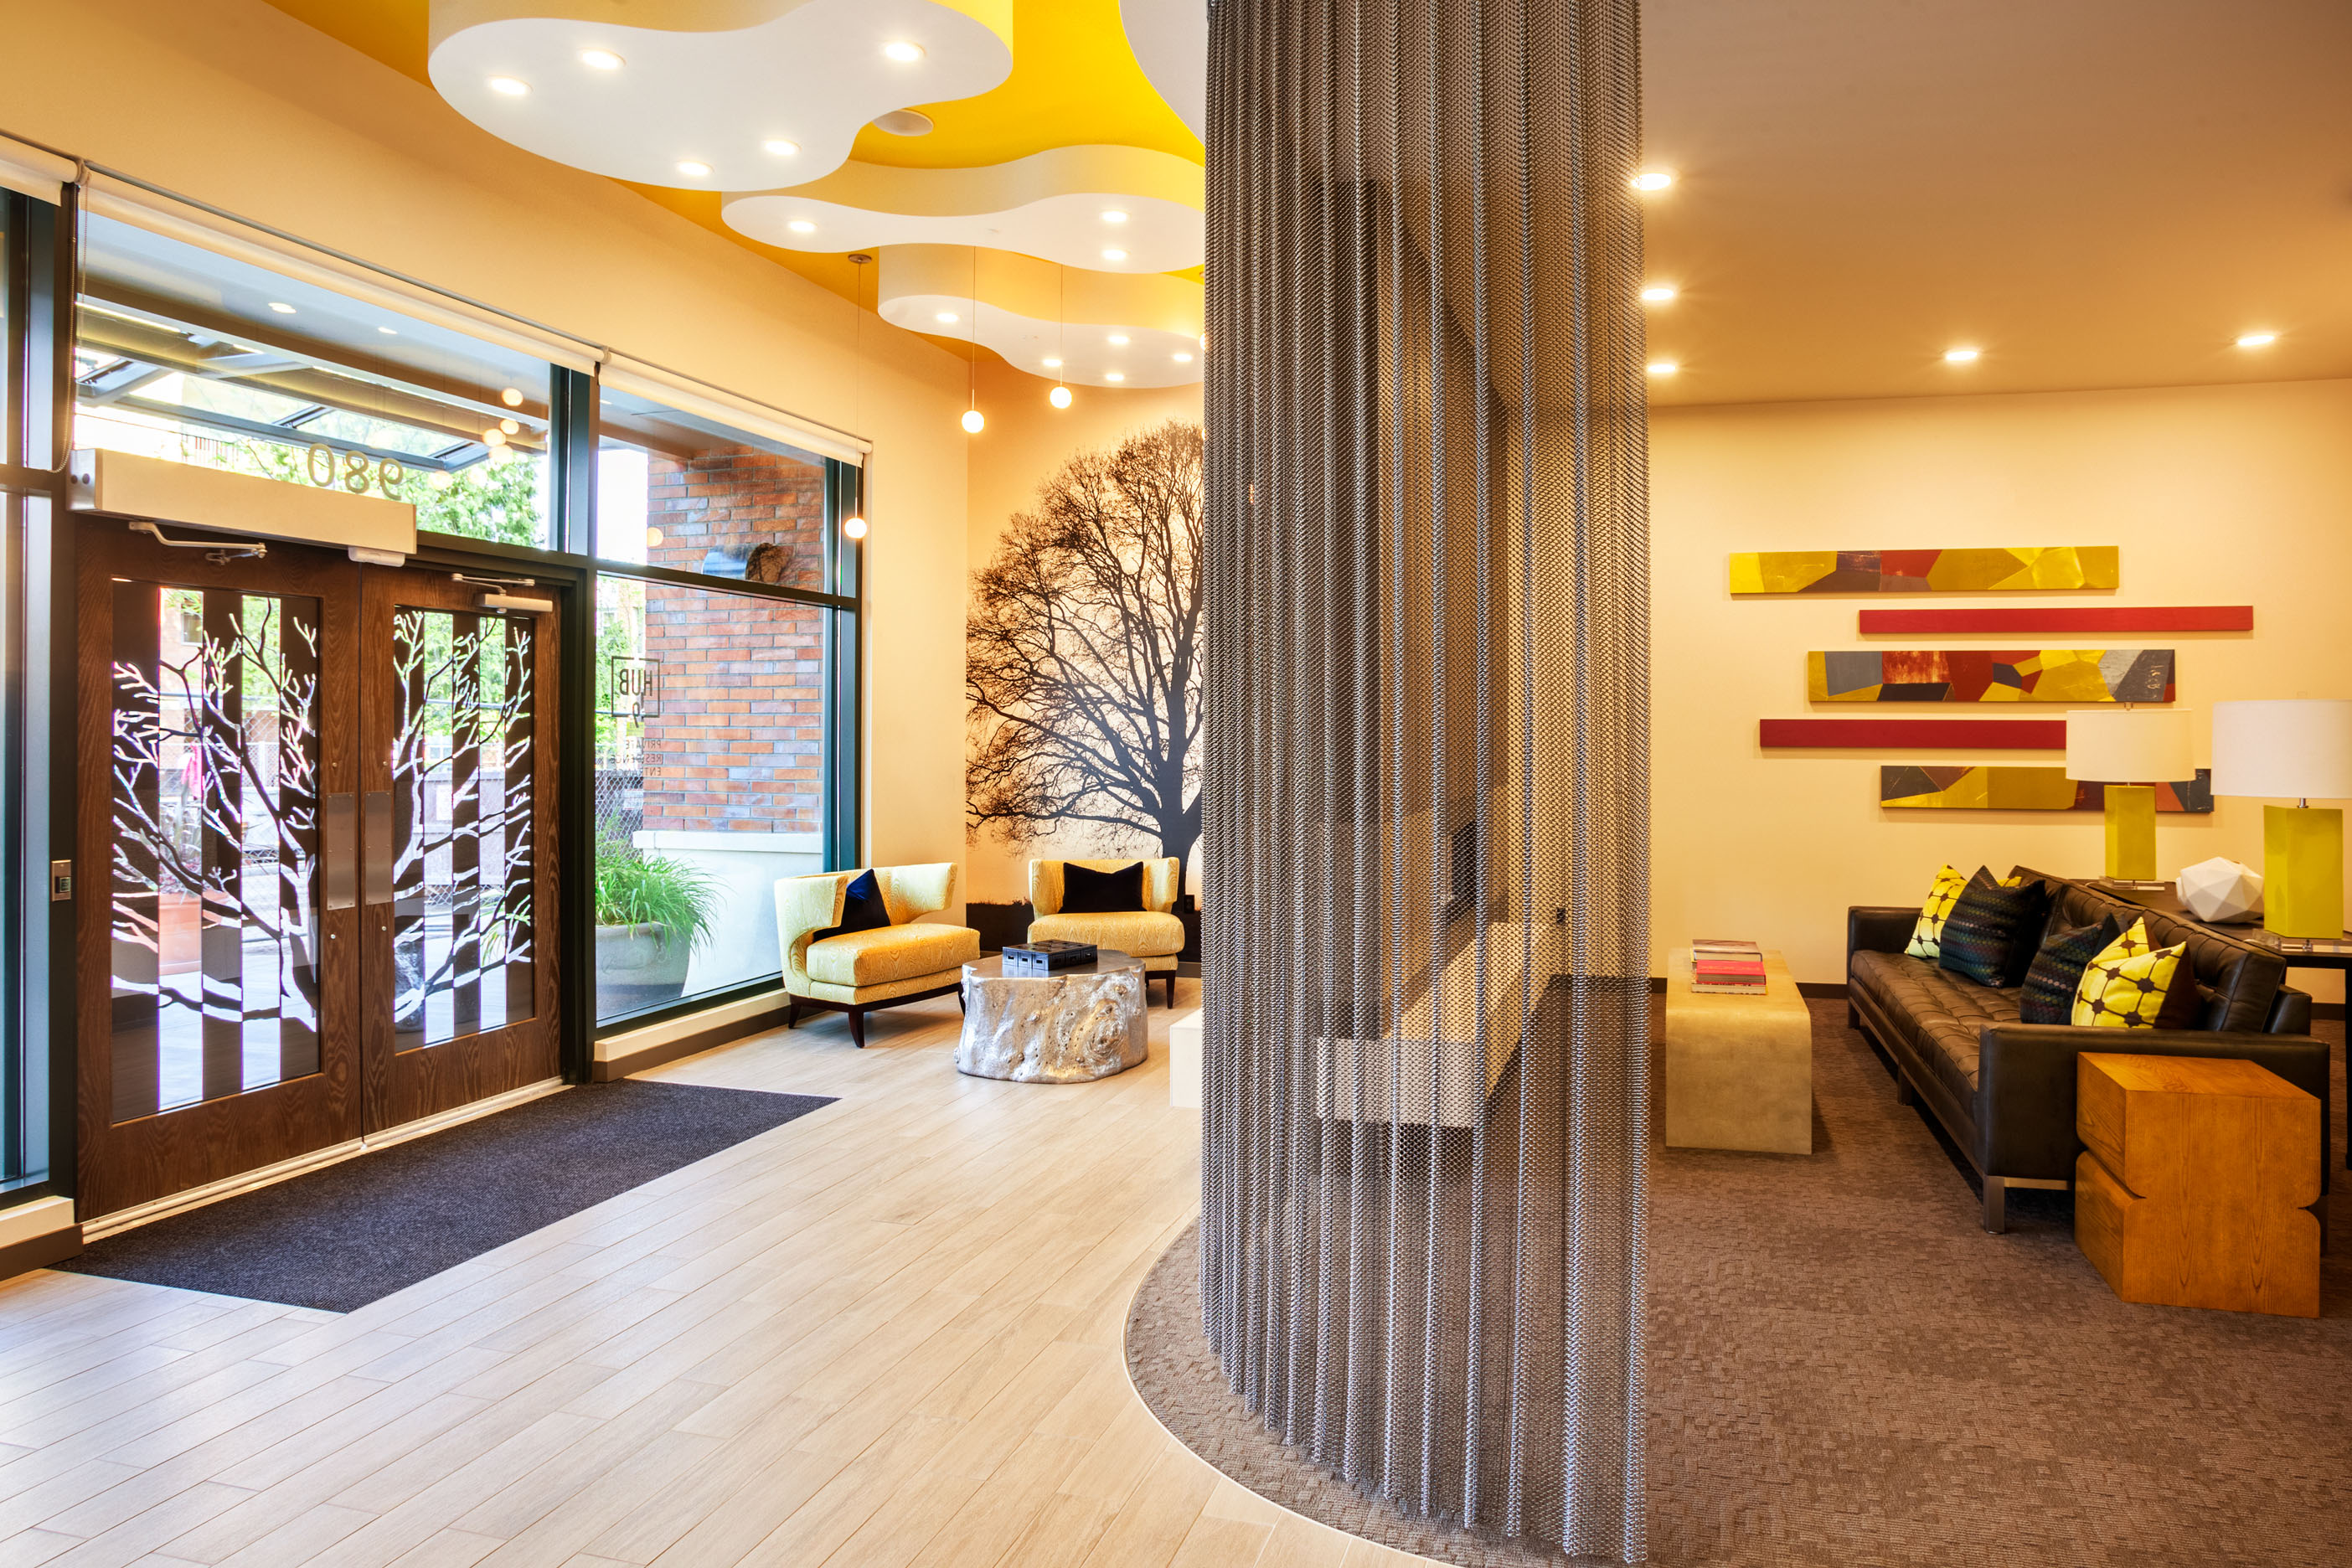 Pdx interior design brick front entry into building a radiant welcoming lobby of yellows